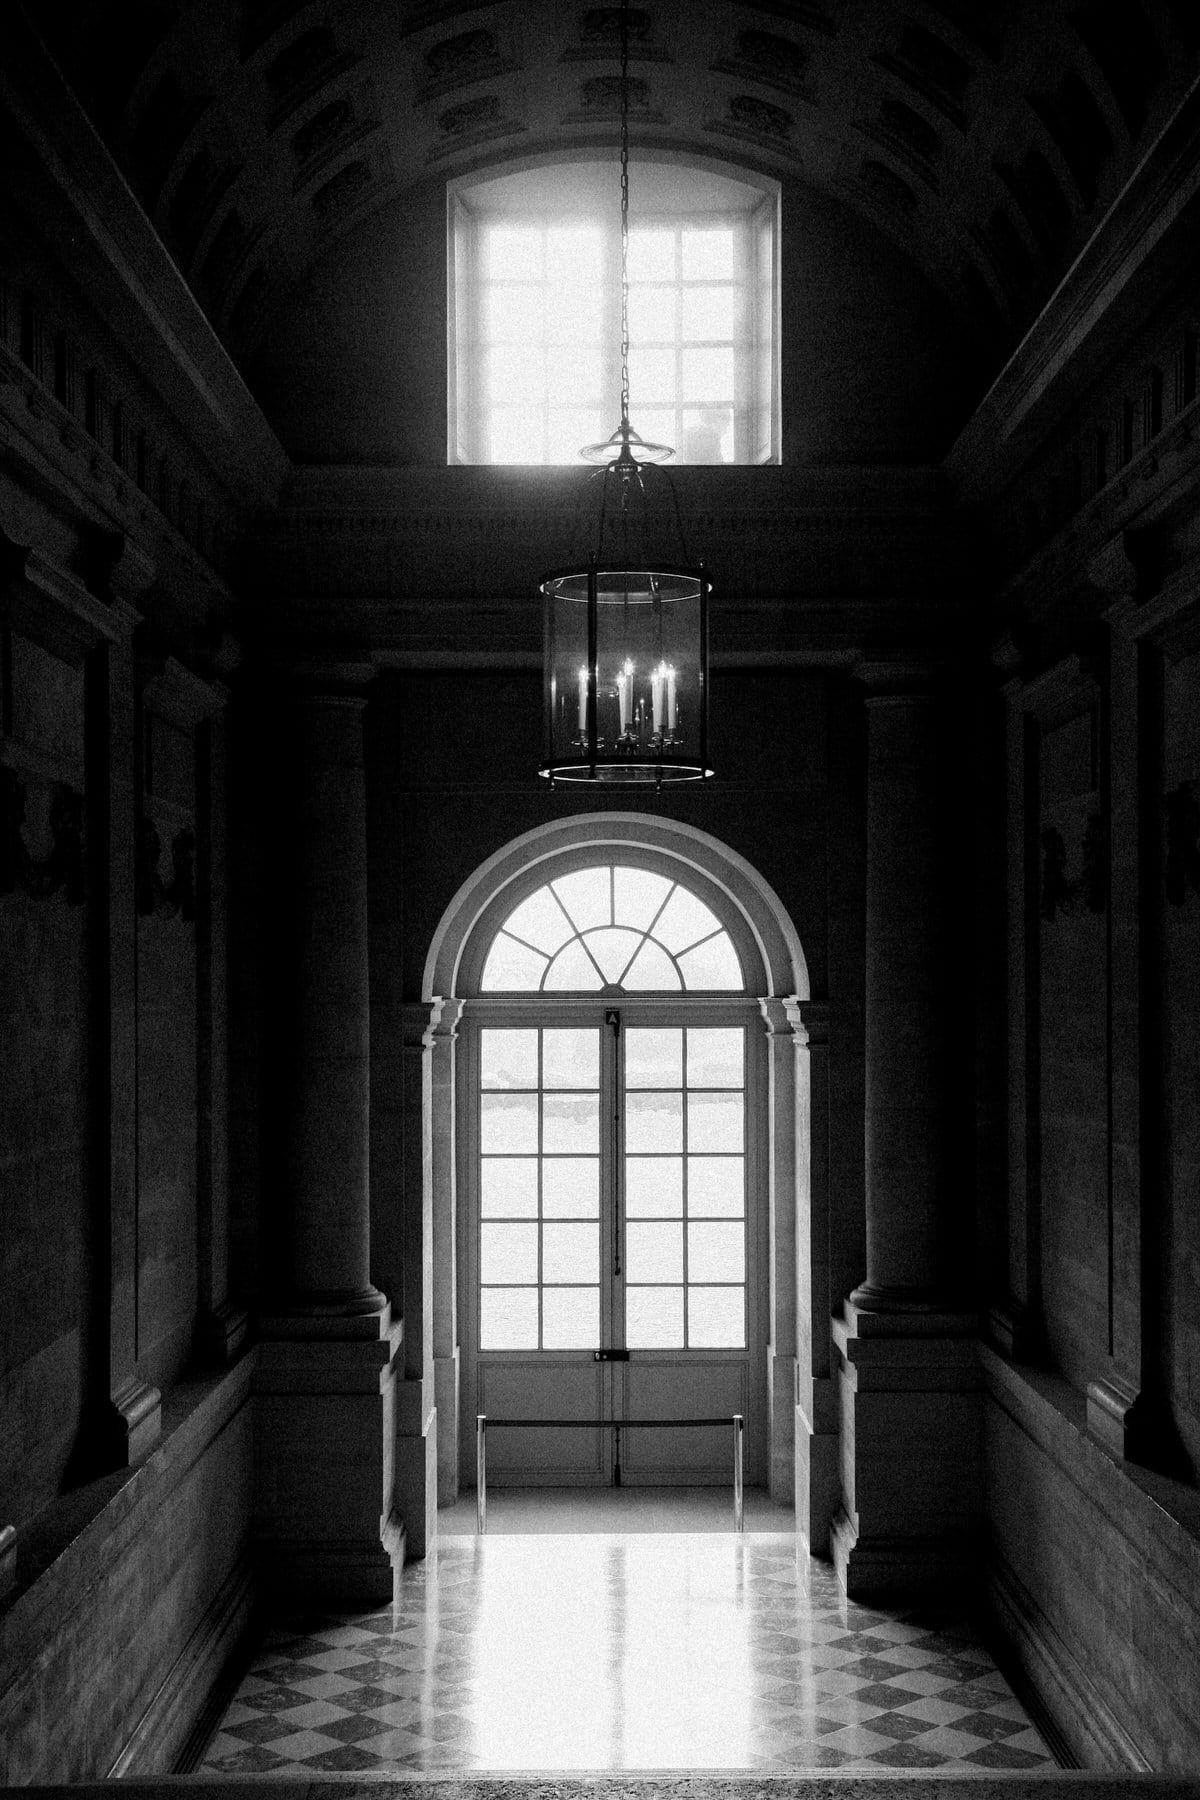 Palace-of-Versailles-France-black-and-white-fine-art-photography-by-Studio-L-photographer-Laura-Schneider-_4779